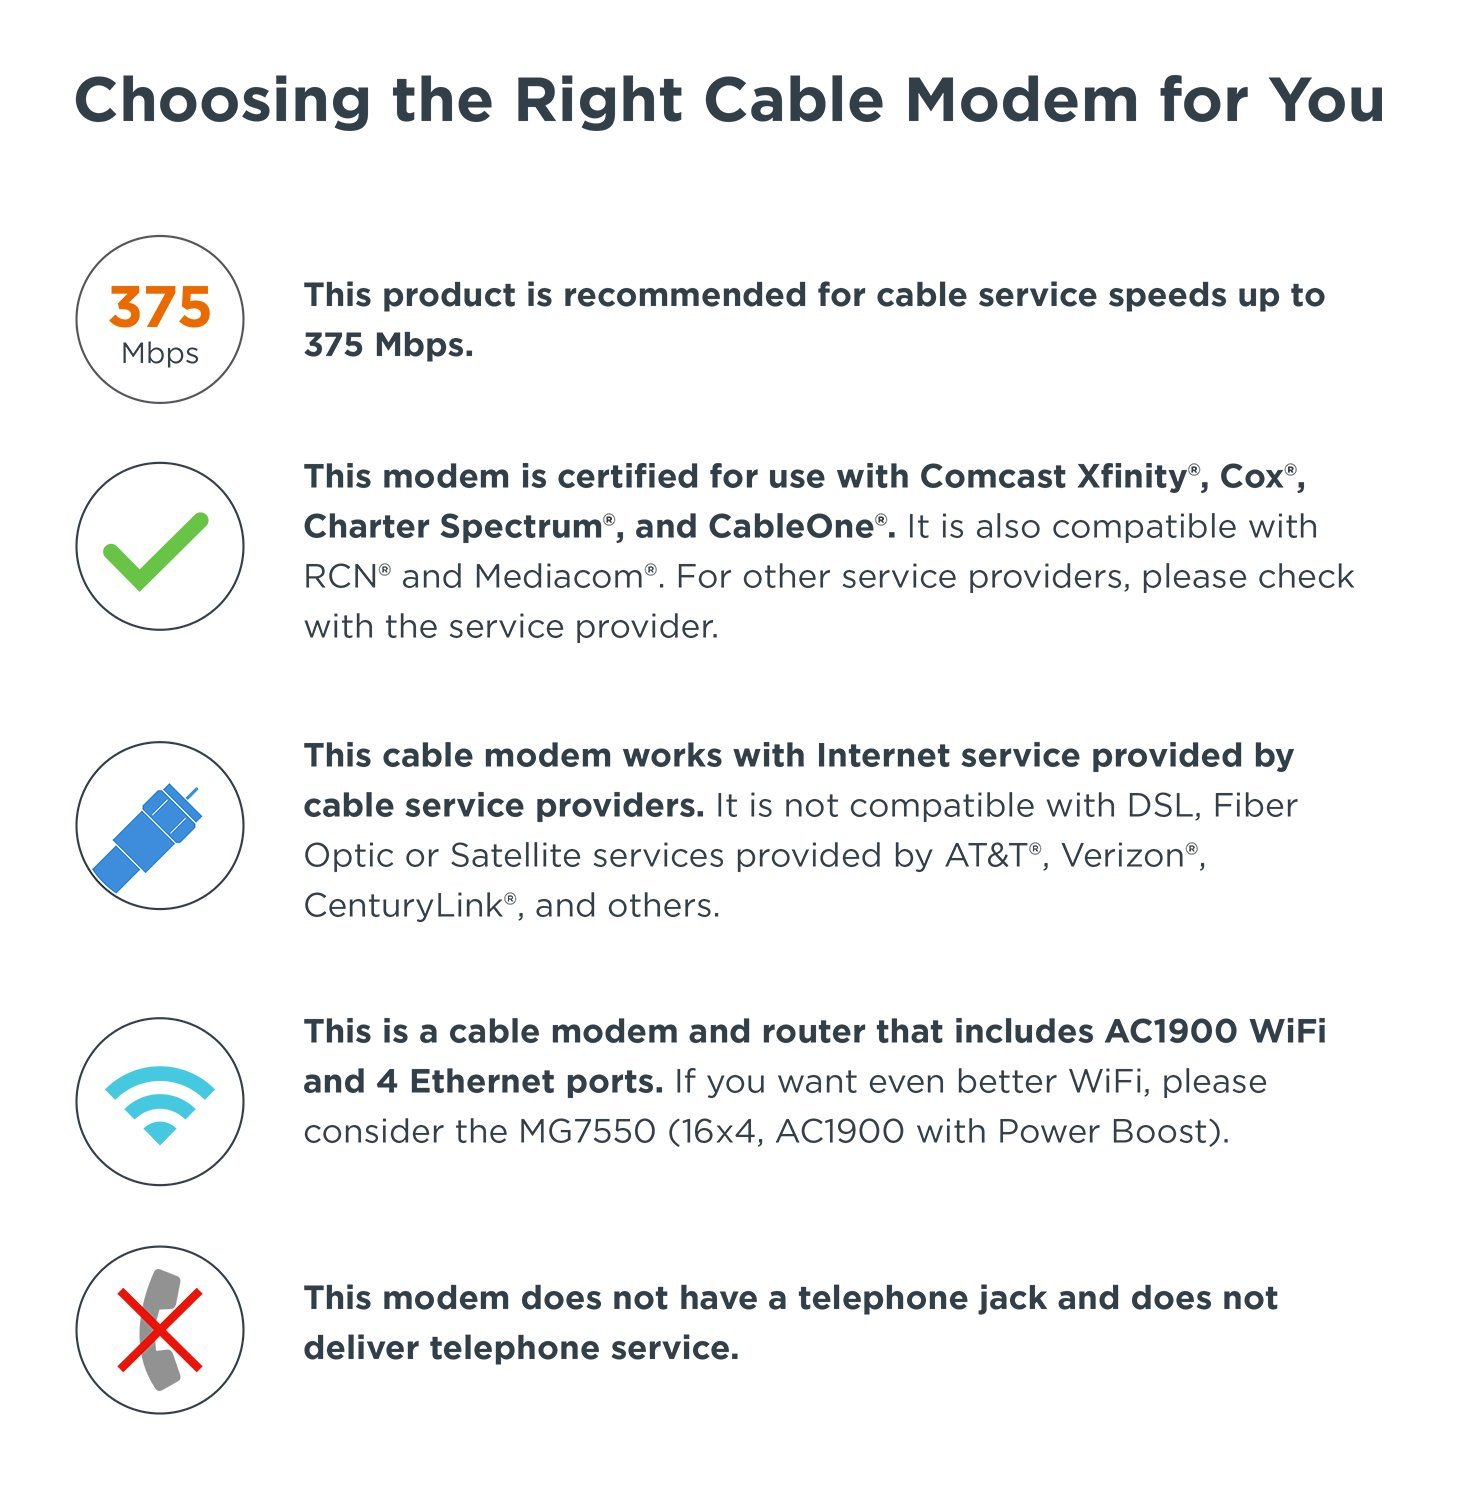 Motorola Mg7540 16x4 Cable Modem Plus Ac1600 Dual Band Xfinity Wiring Diagram Wi Fi Gigabit Router 686 Mbps Maximum Docsis 30 Approved By Comcast Cox